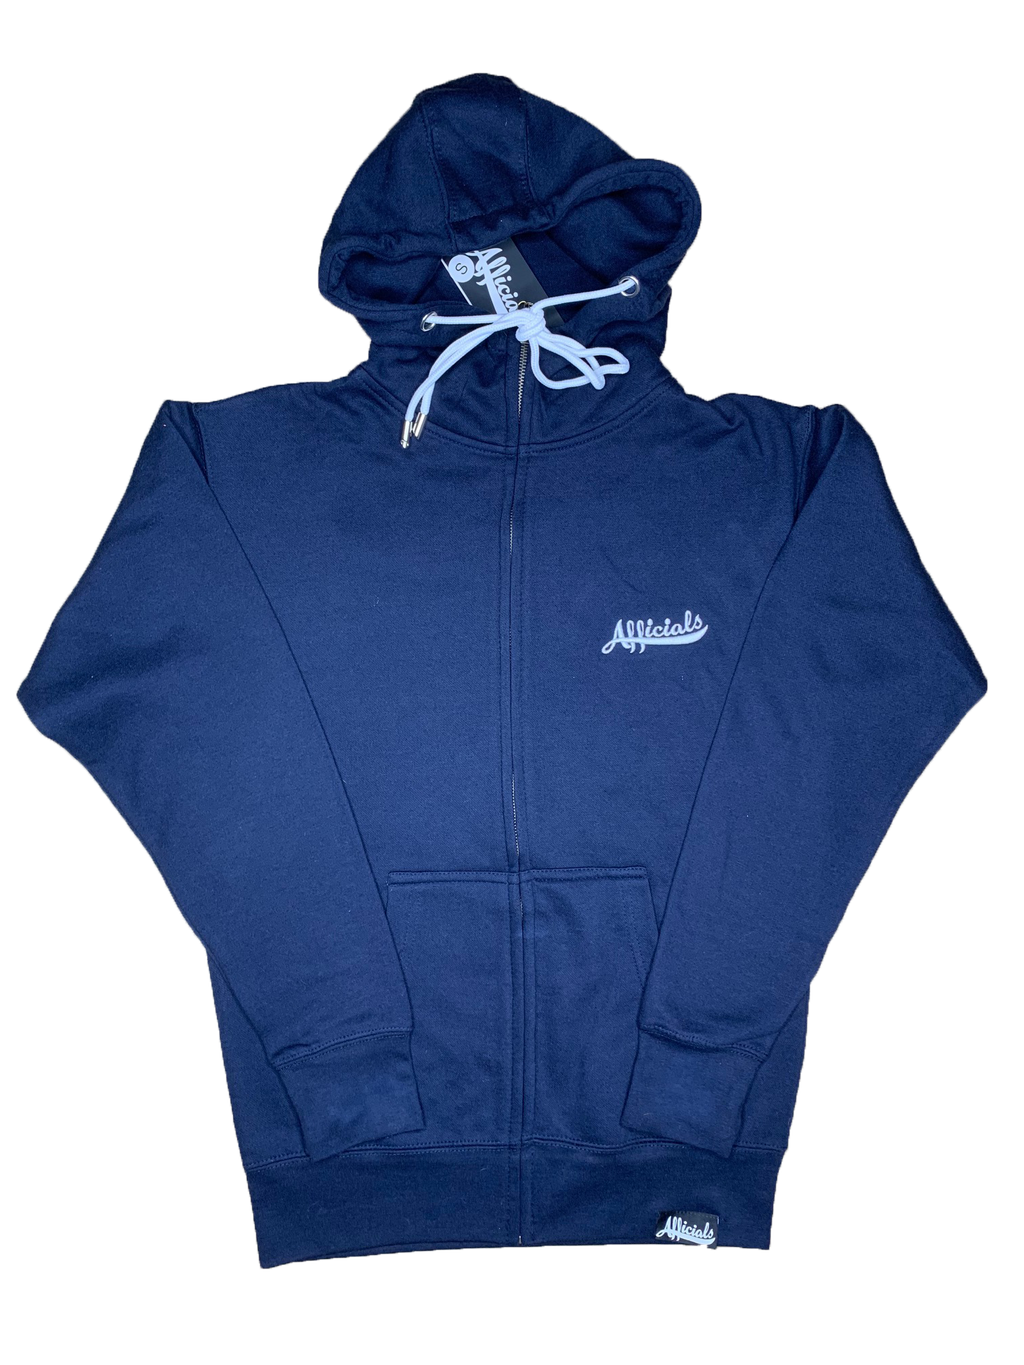 Afficials ZIp-Up Hoodies NAVY/WHITE